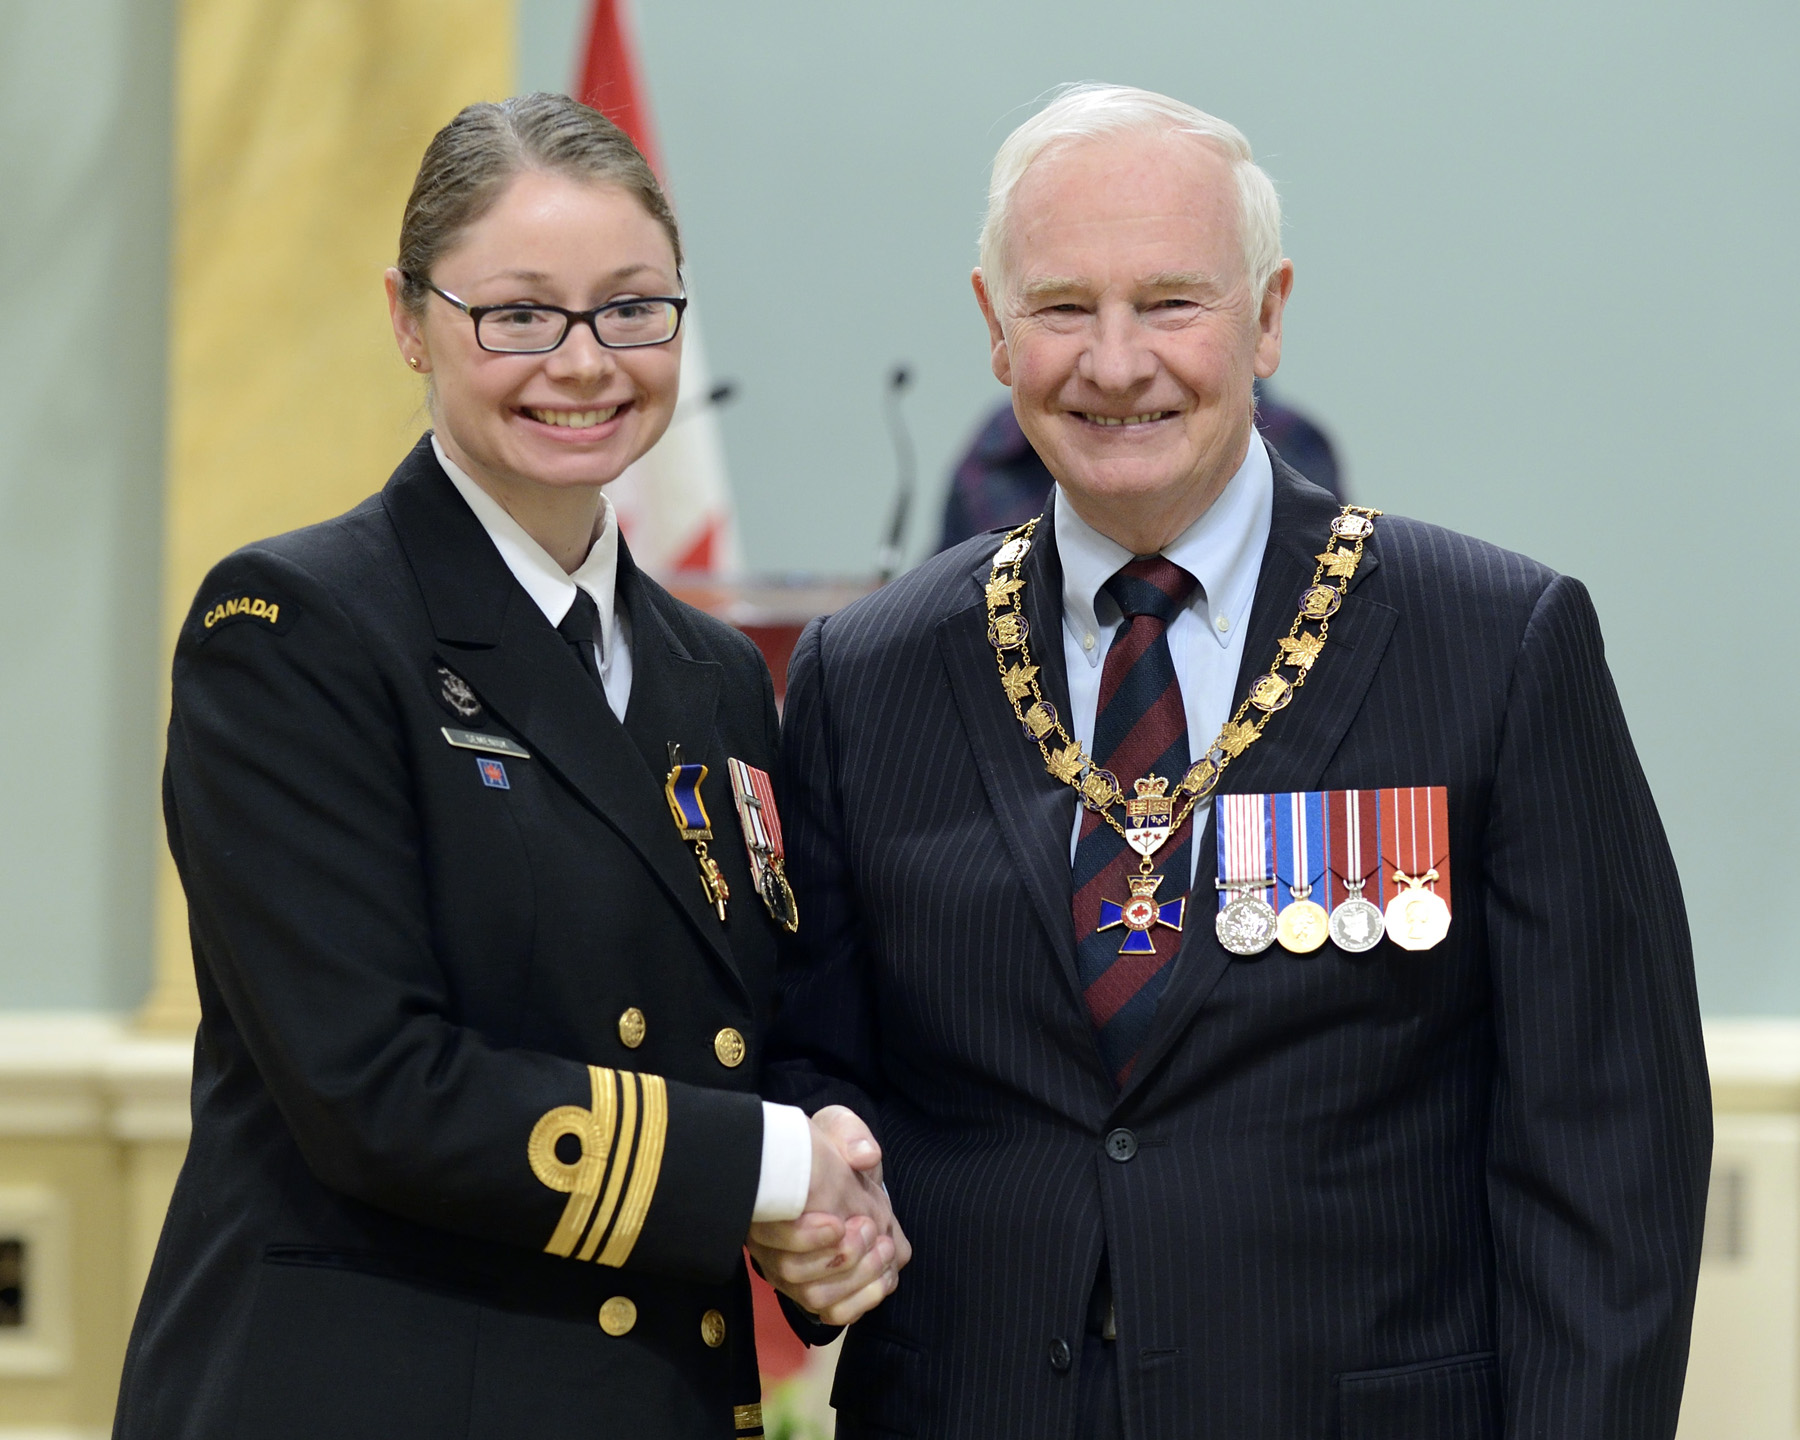 His Excellency presented the Order of Military Merit at the Officer level (O.M.M.) to Lieutenant-Commander Lorinda Semeniuk, O.M.M., C.D., Canadian Fleet Pacific Headquarters, (Victoria, B.C.).